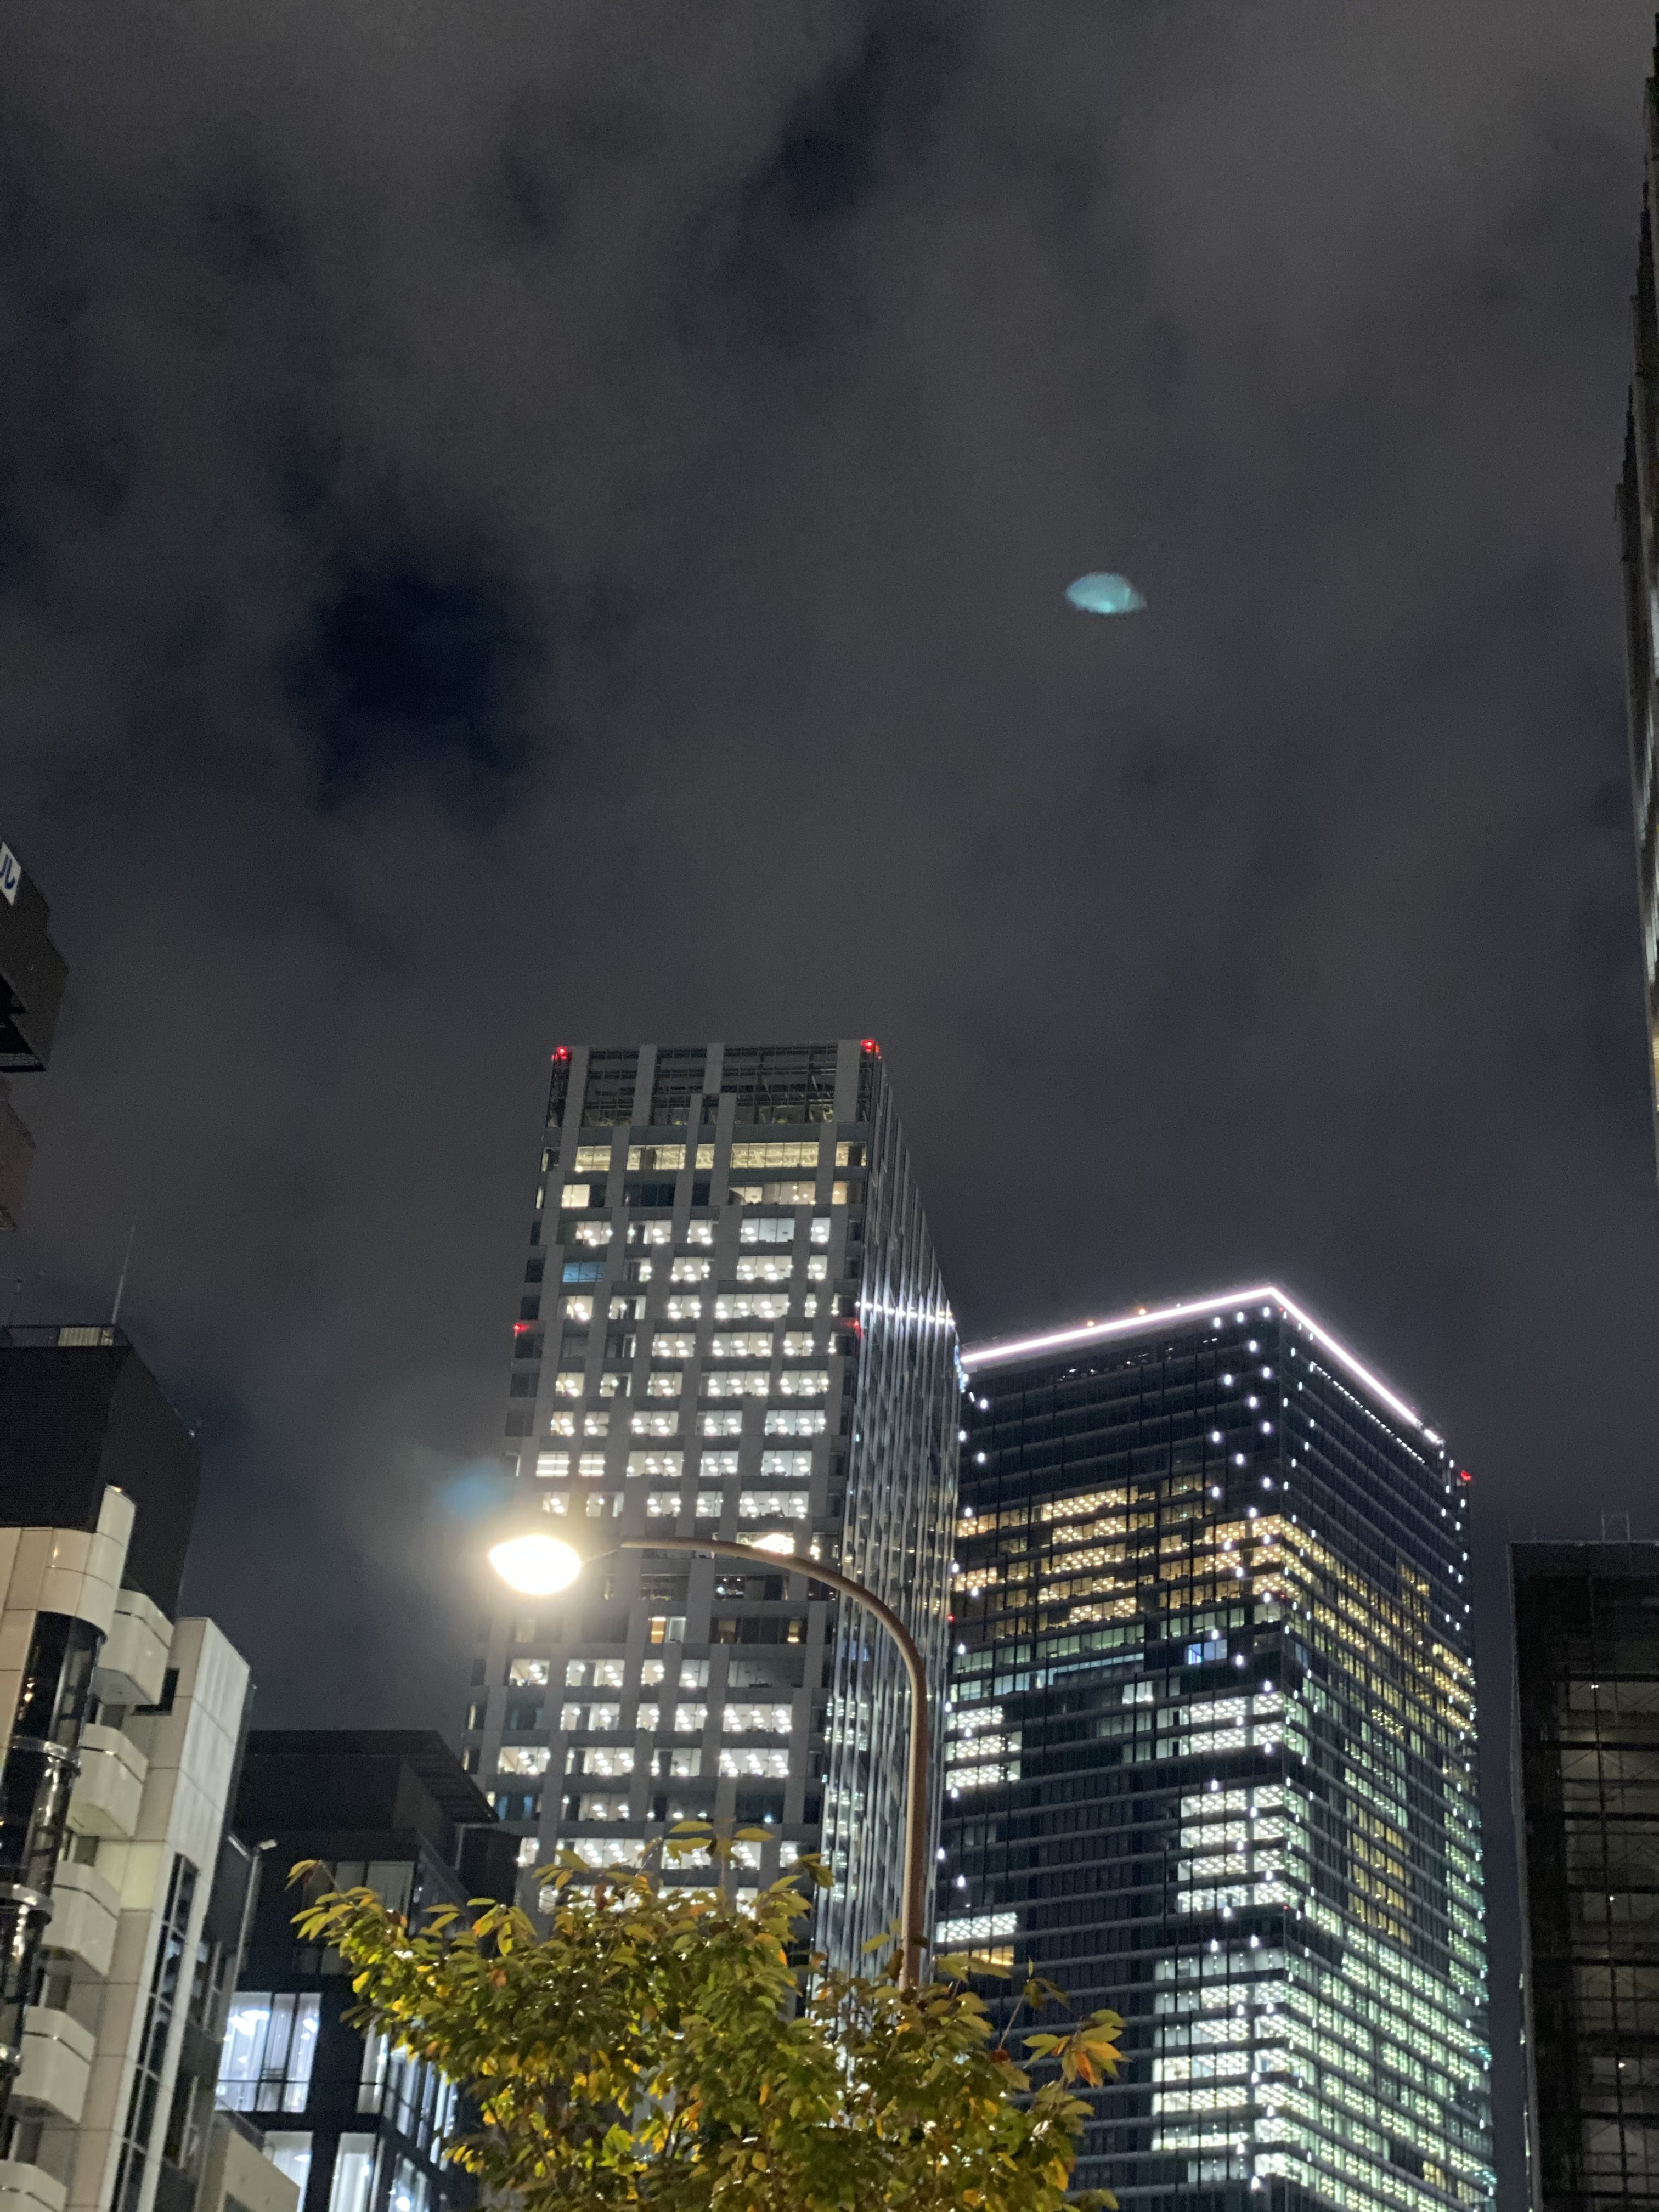 I think this is UFO in Tokyo near the building of Google Japan